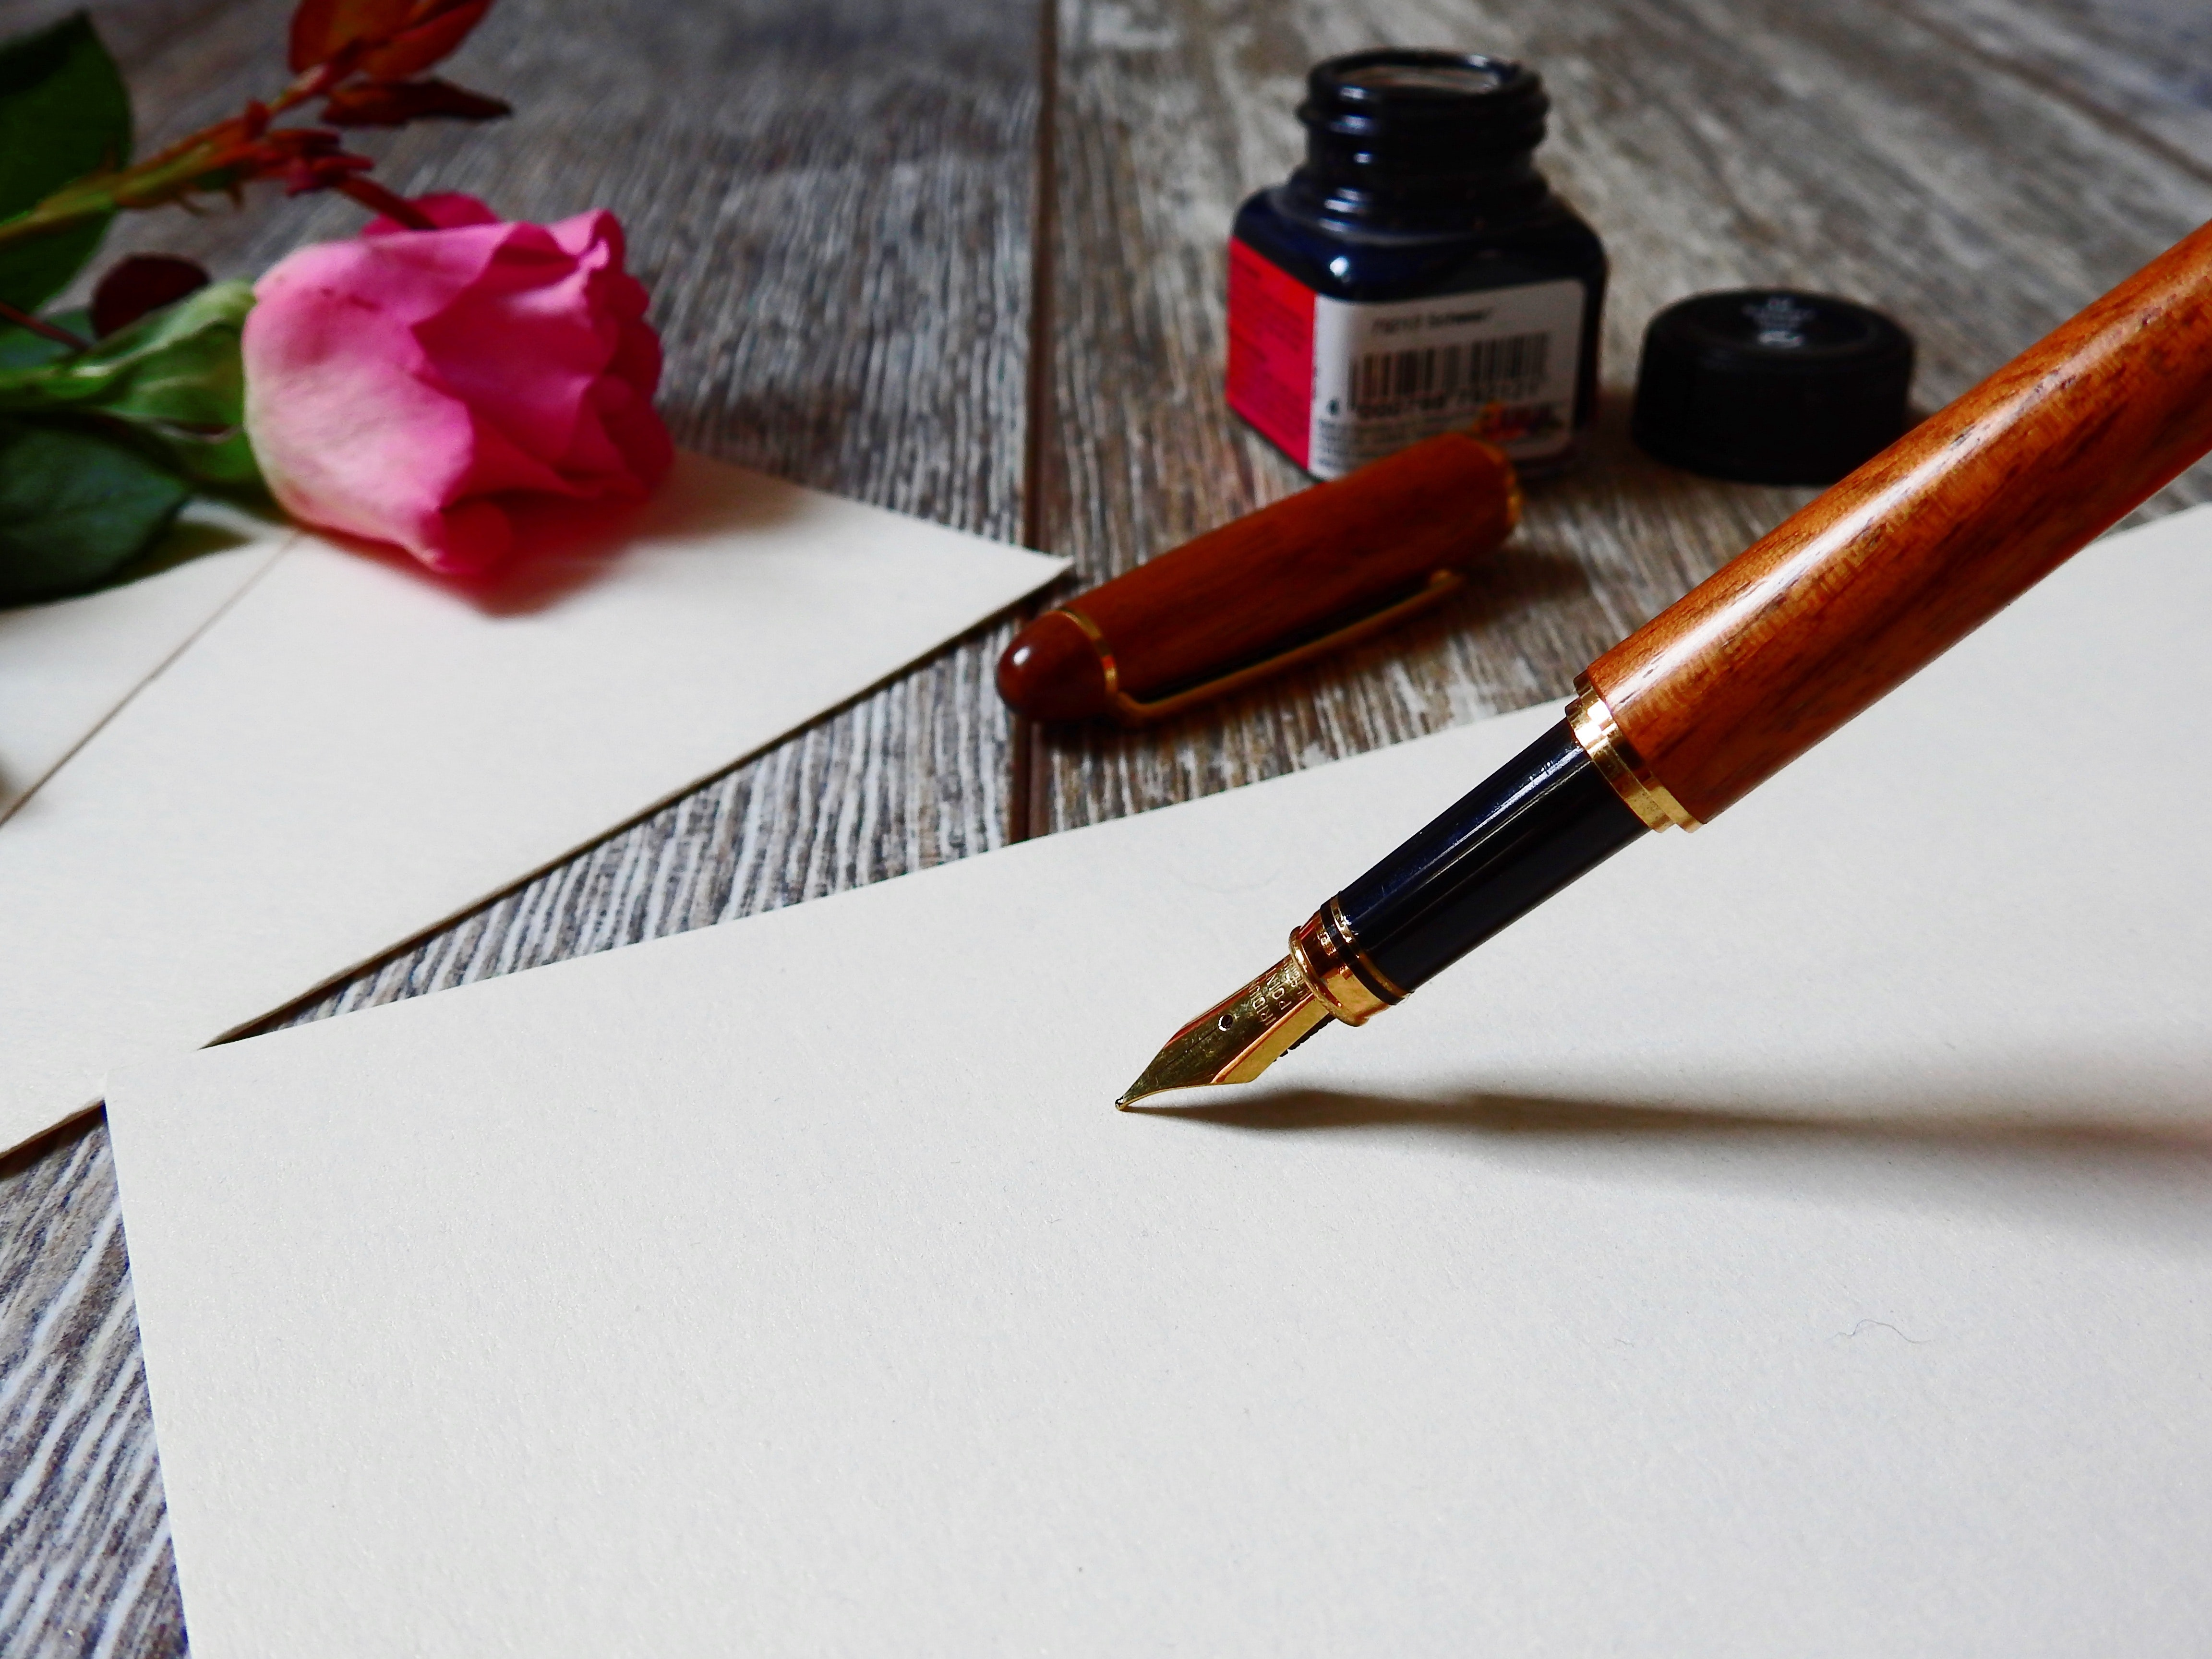 Wood fountain pen pressed against a blank piece of paper with cap, inkwell, and pink rose in the background